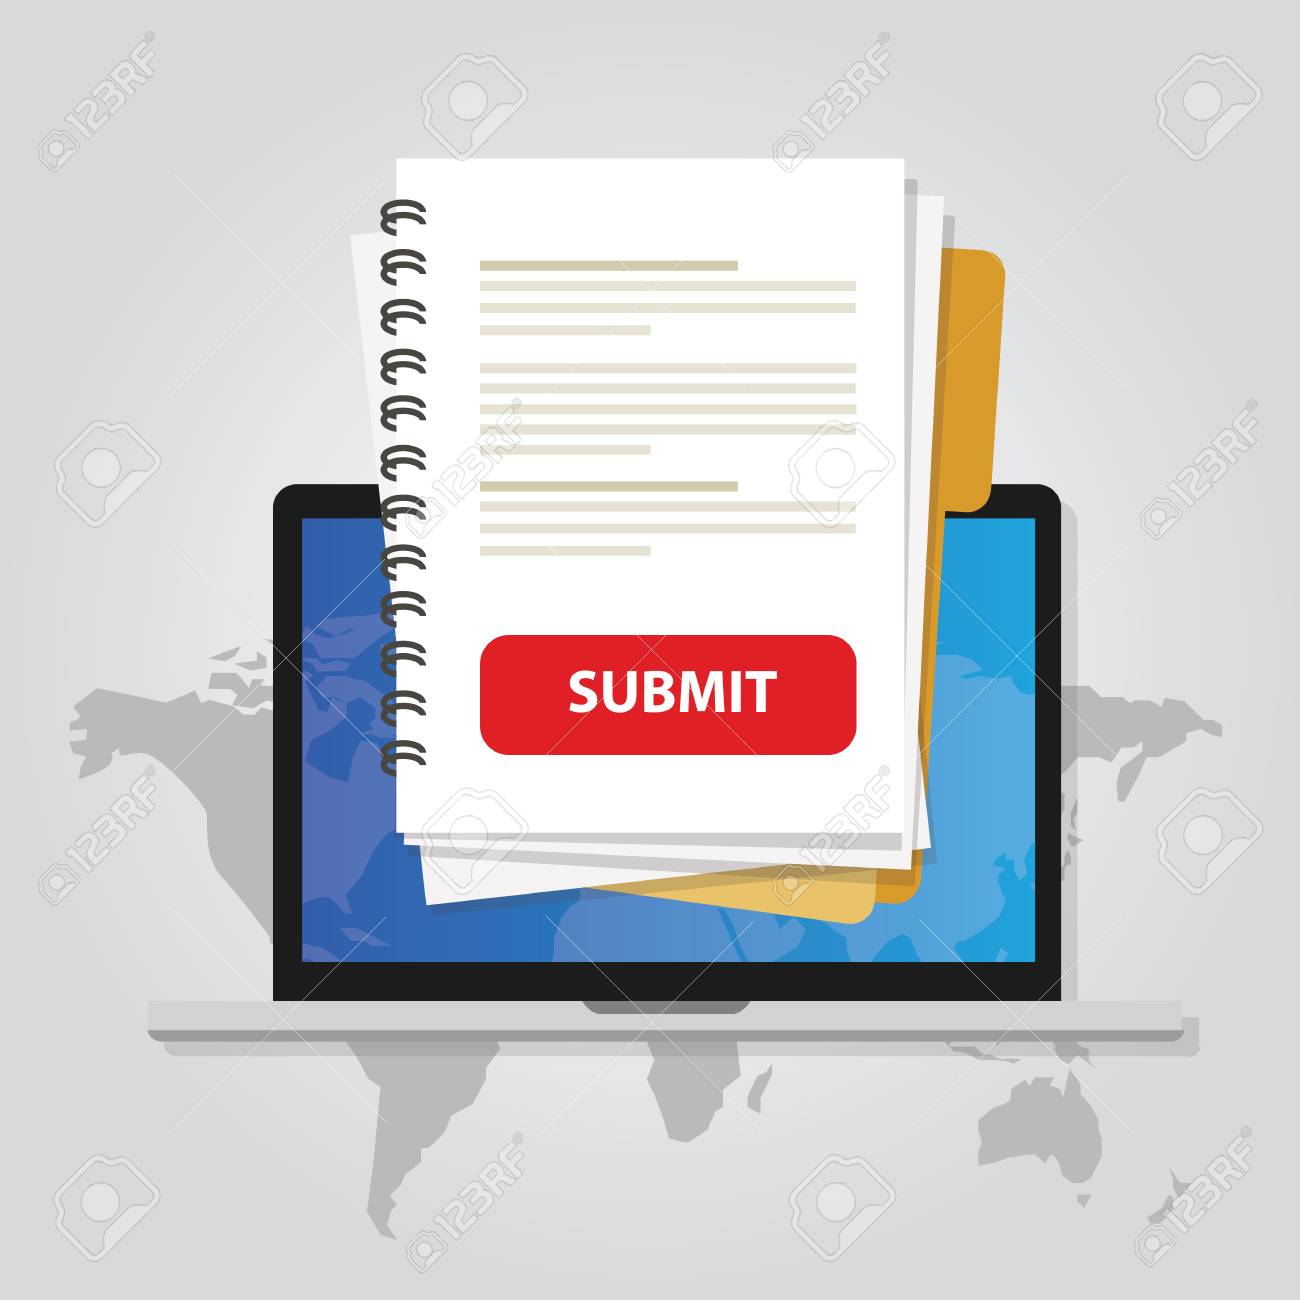 Submit Document Online Via Laptop With Red Button Via Internet